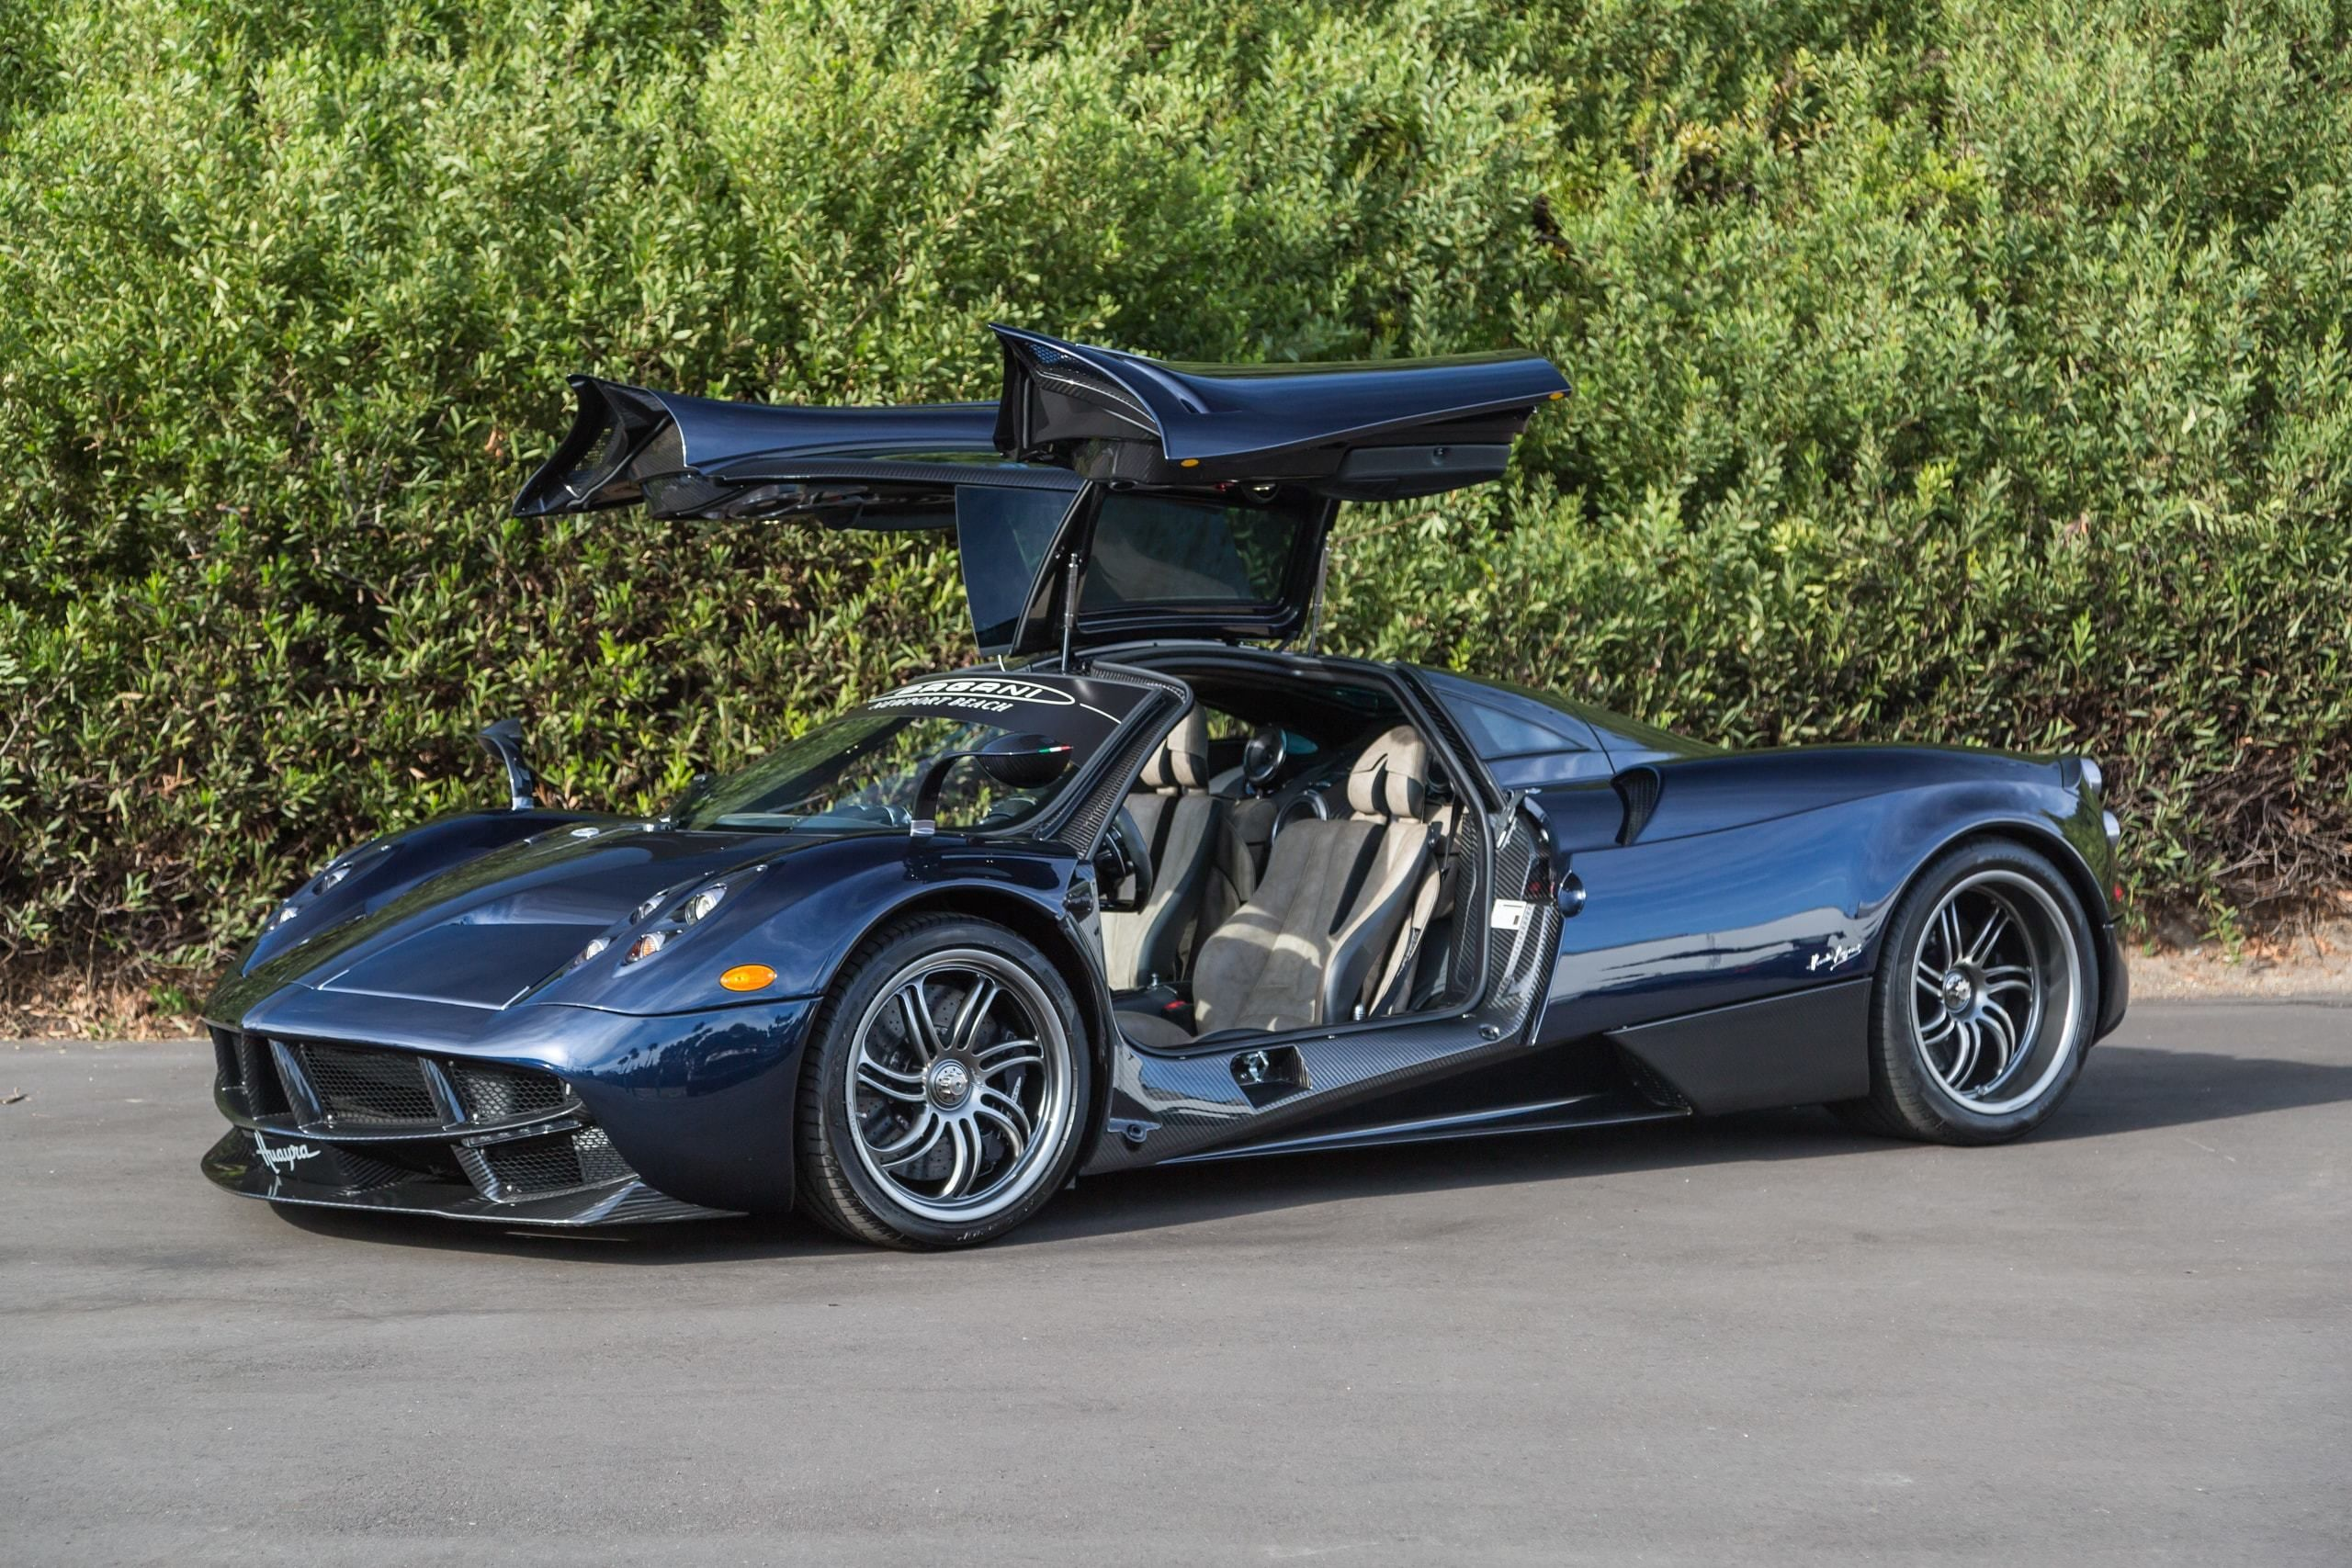 pagani newport beach is pleased to offer this 2014 pagani huayra